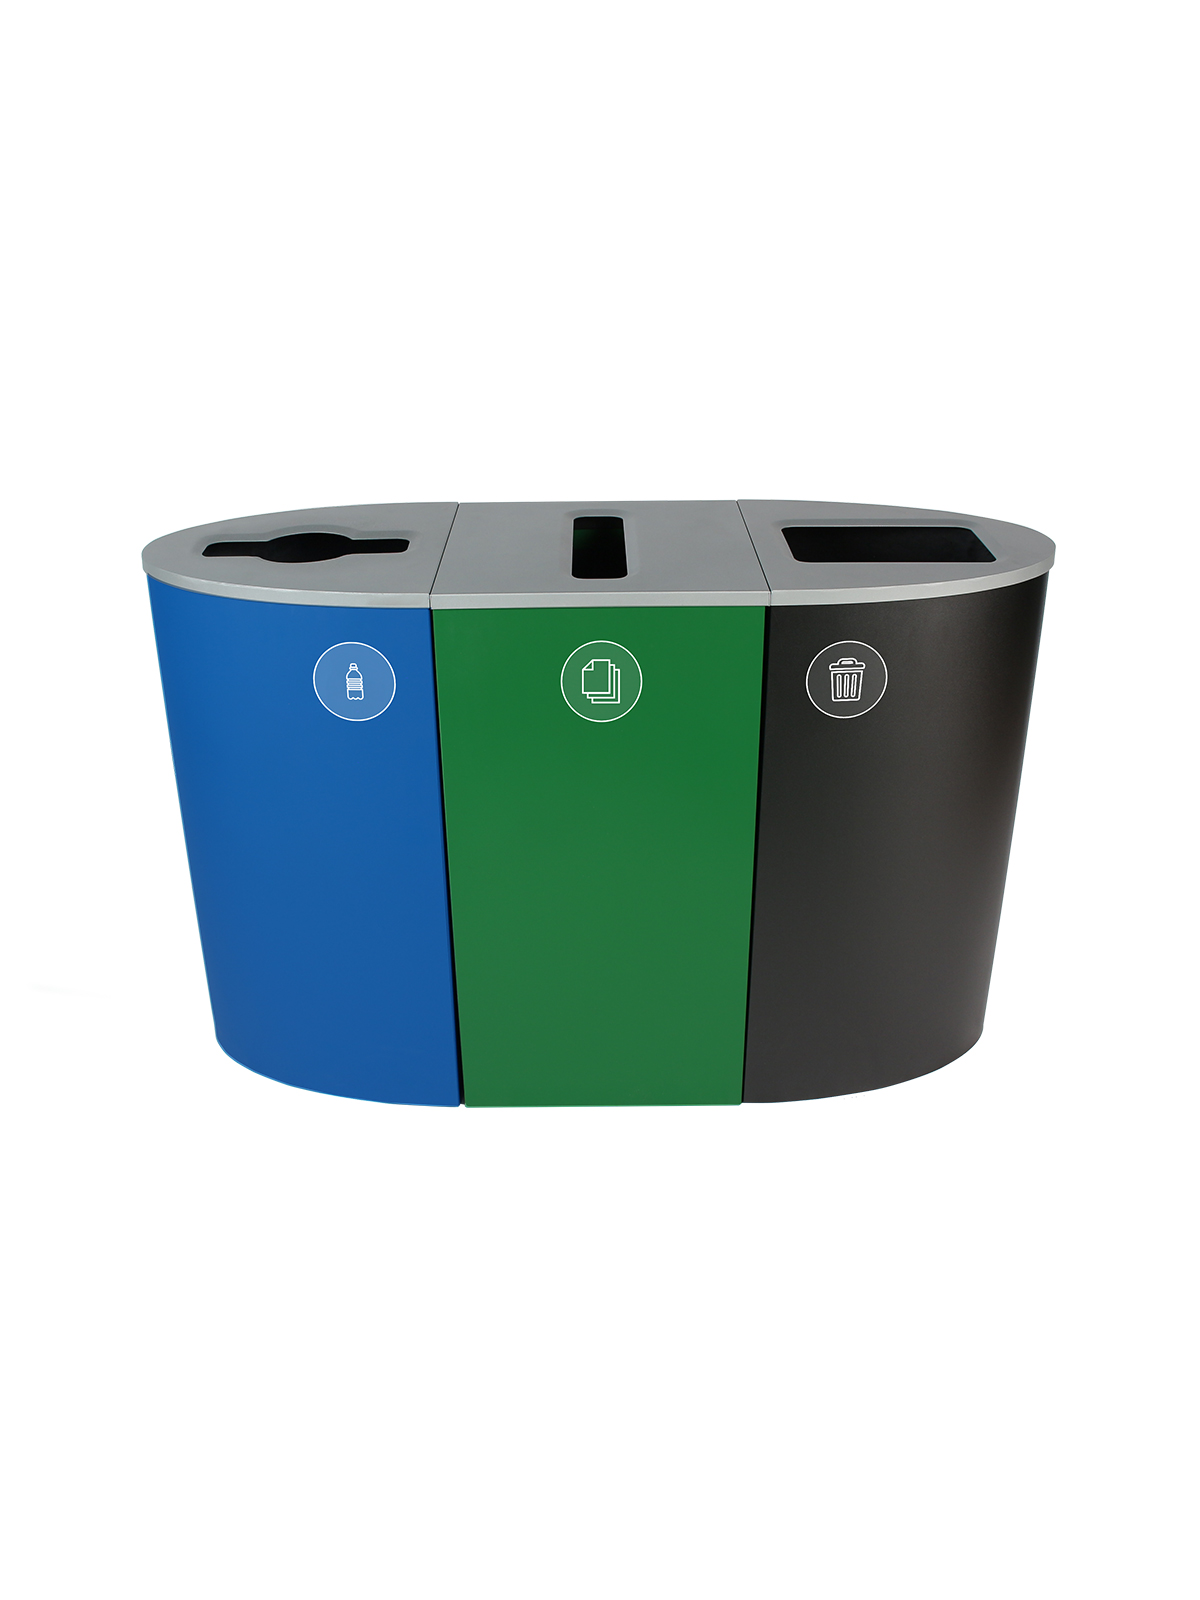 SPECTRUM - Triple - Oregon Compliant - Plastic Containers-Paper-Waste - Mixed-Slot-Full - Blue-Green-Black